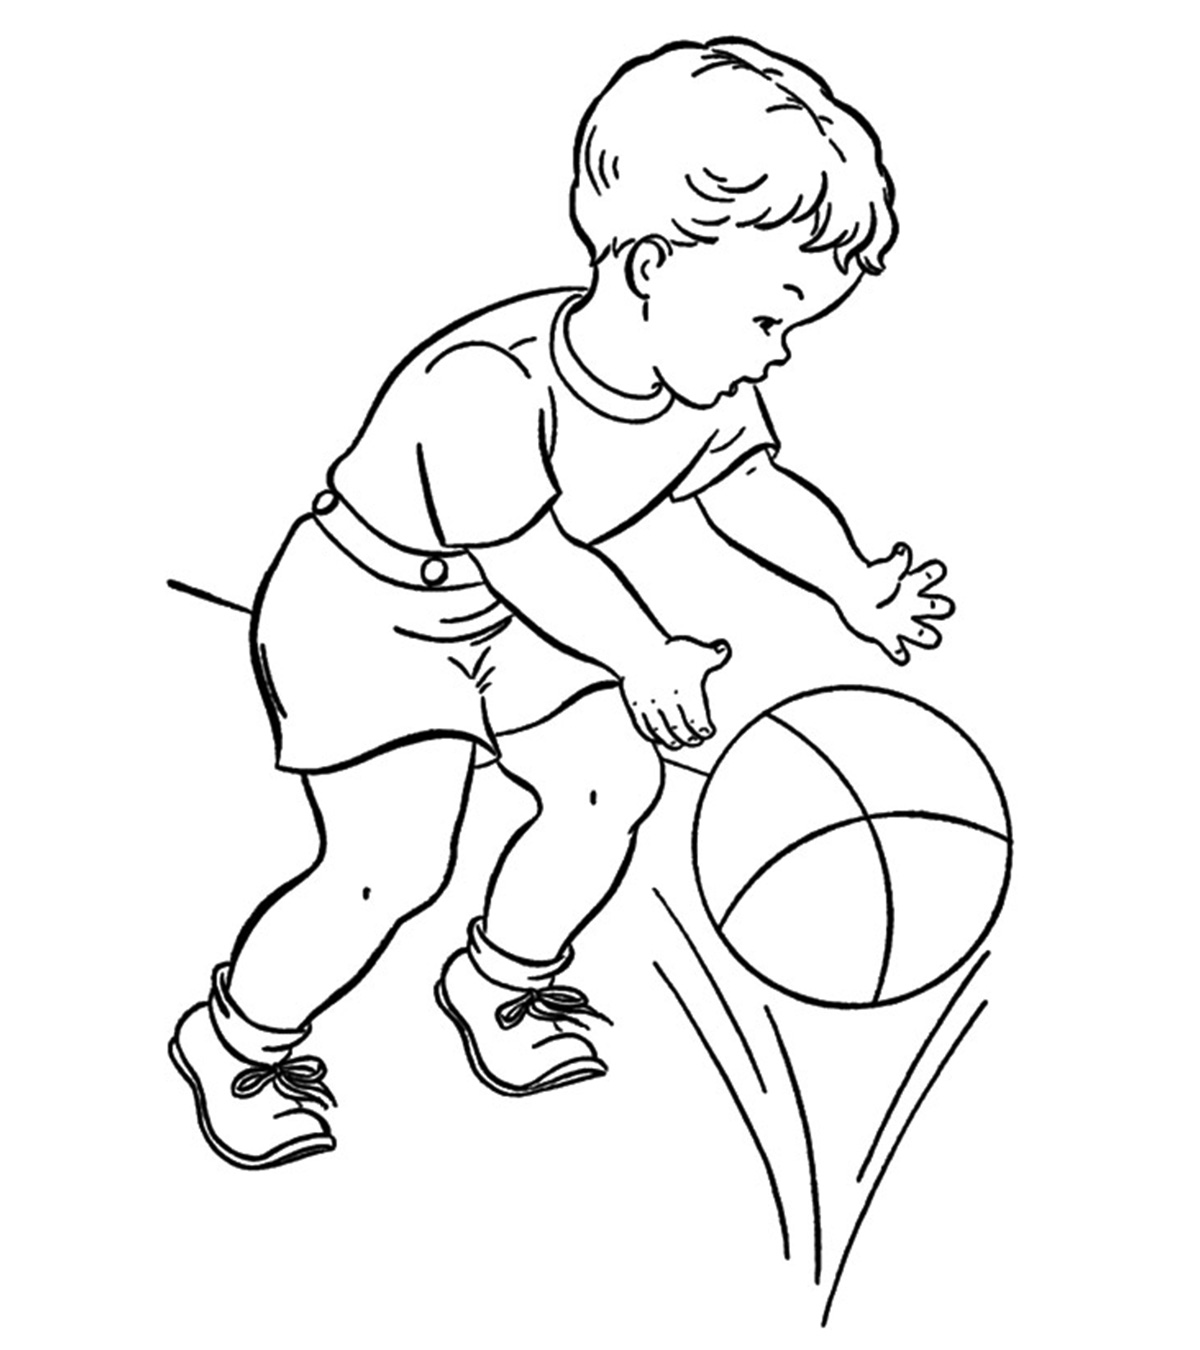 Sports Coloring Pages - MomJunction